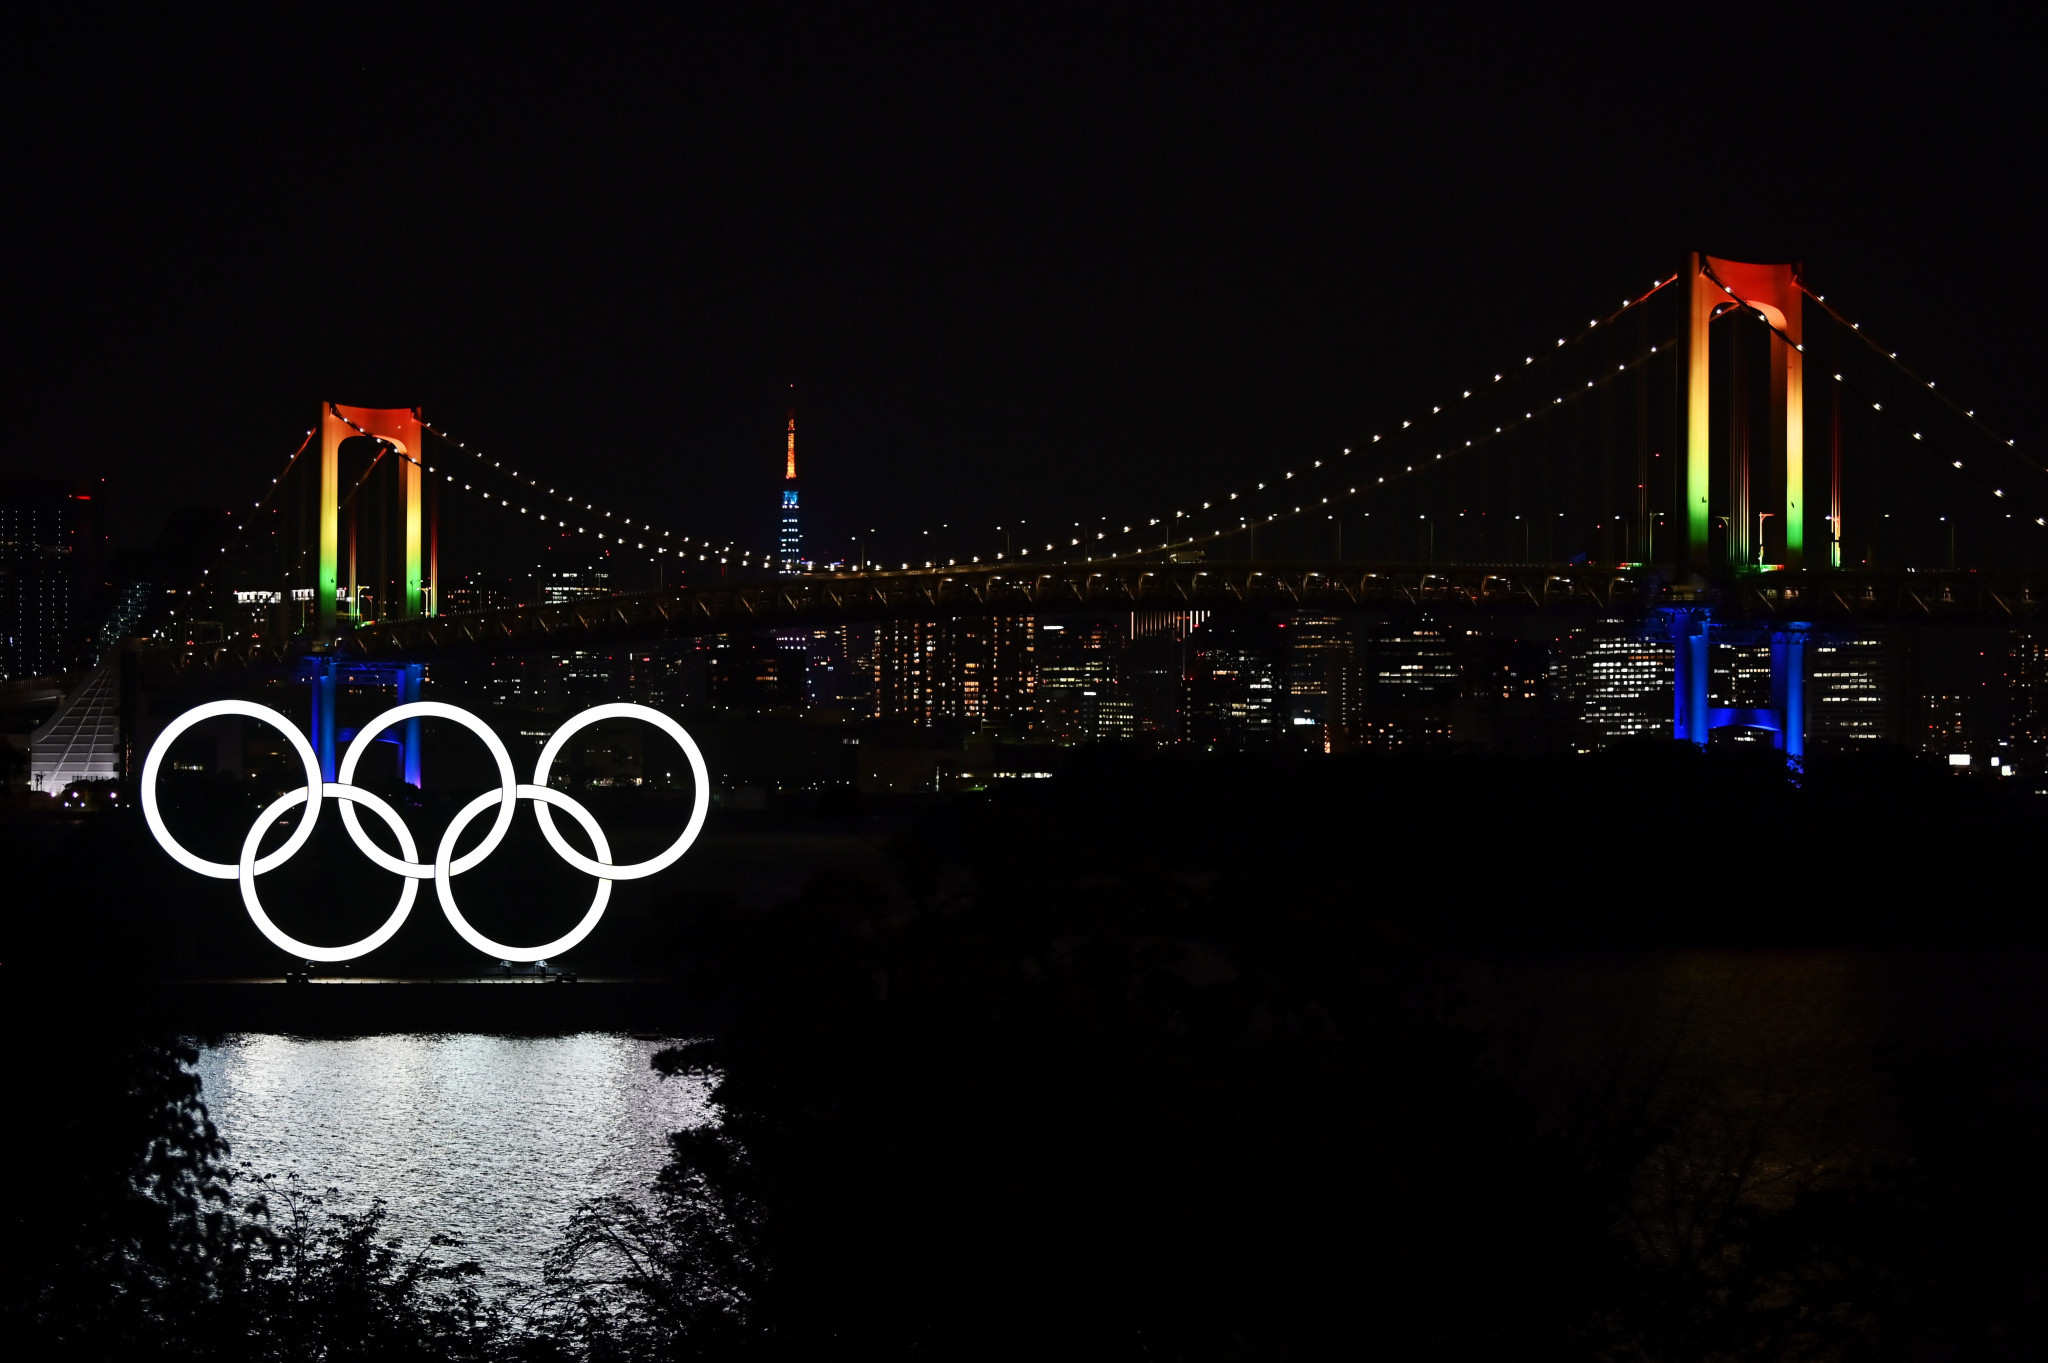 NBC Olympics to use outdoor studio for Tokyo 2020 primetime show